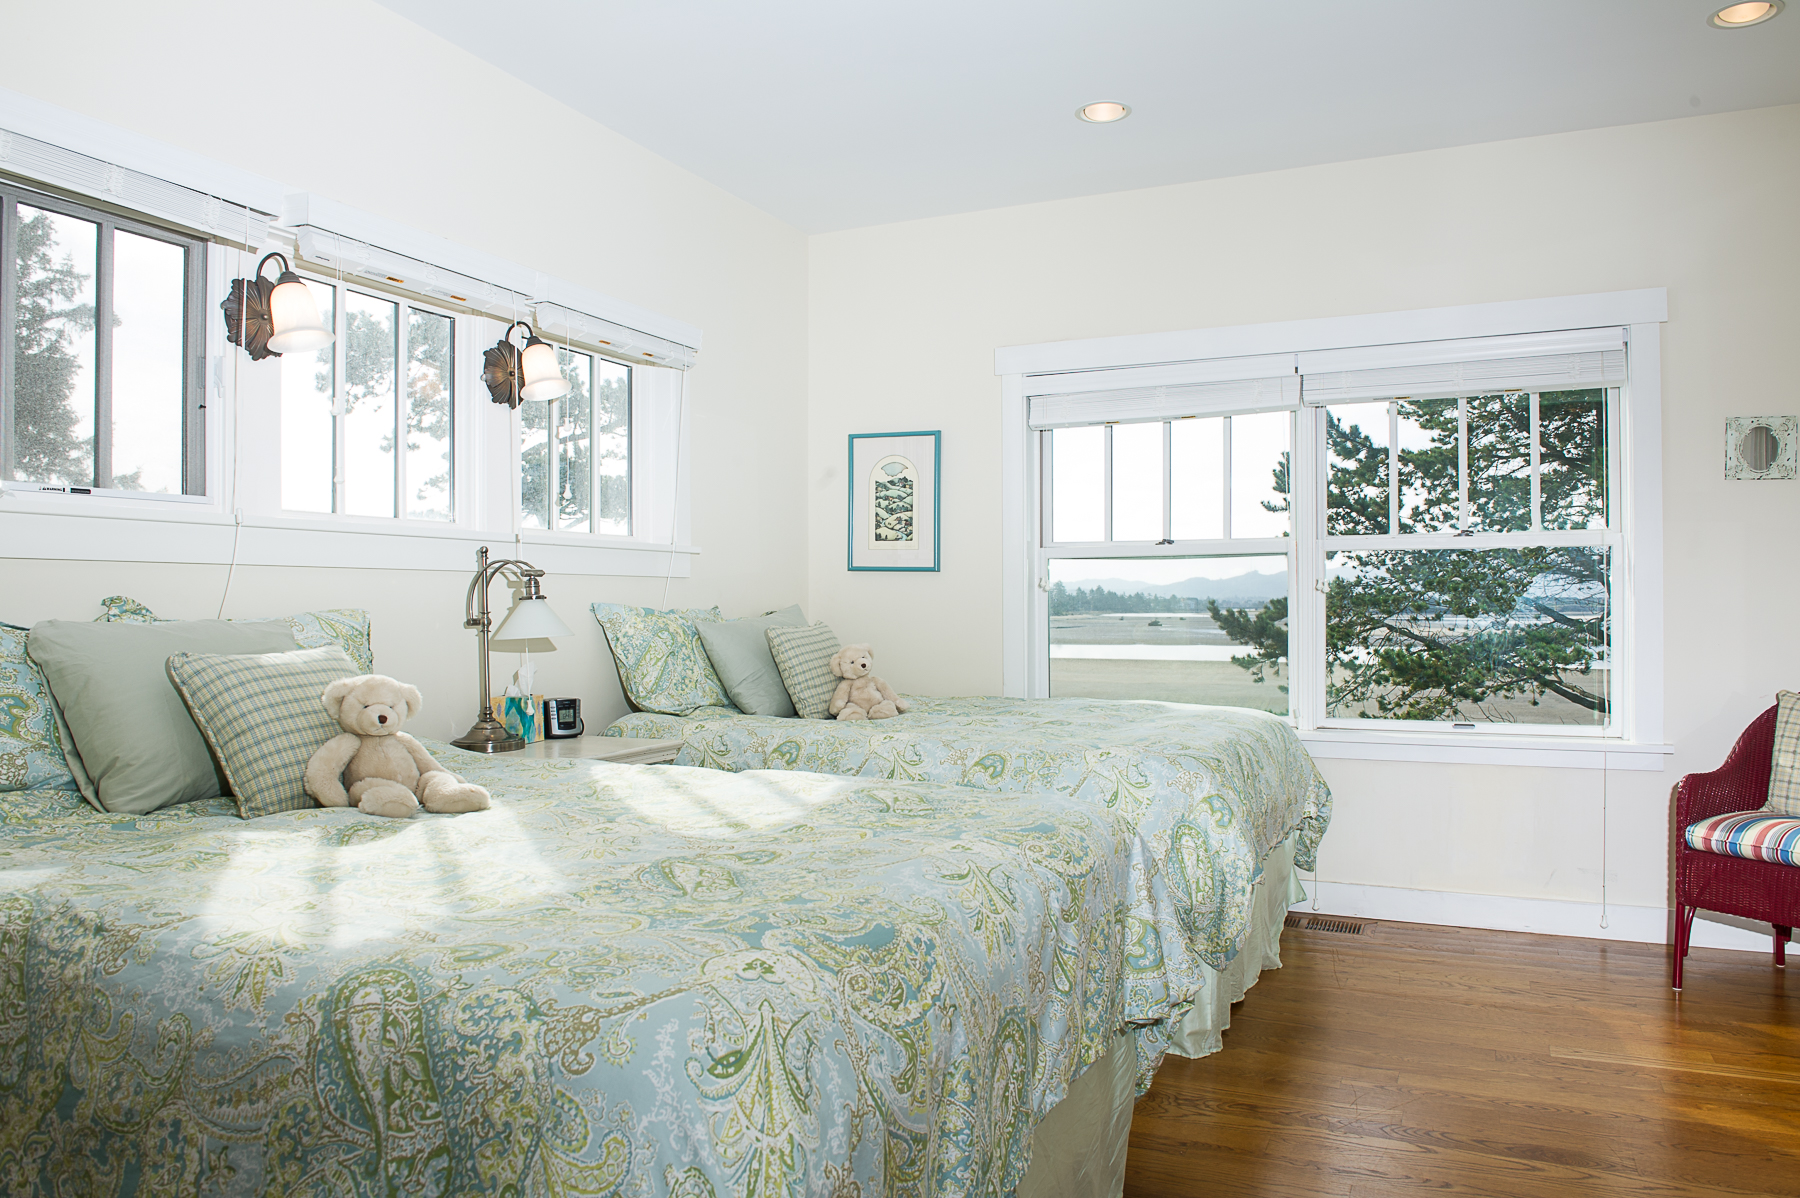 Big House Inside Bedroom big house - little beach - oregon beach vacation rentals